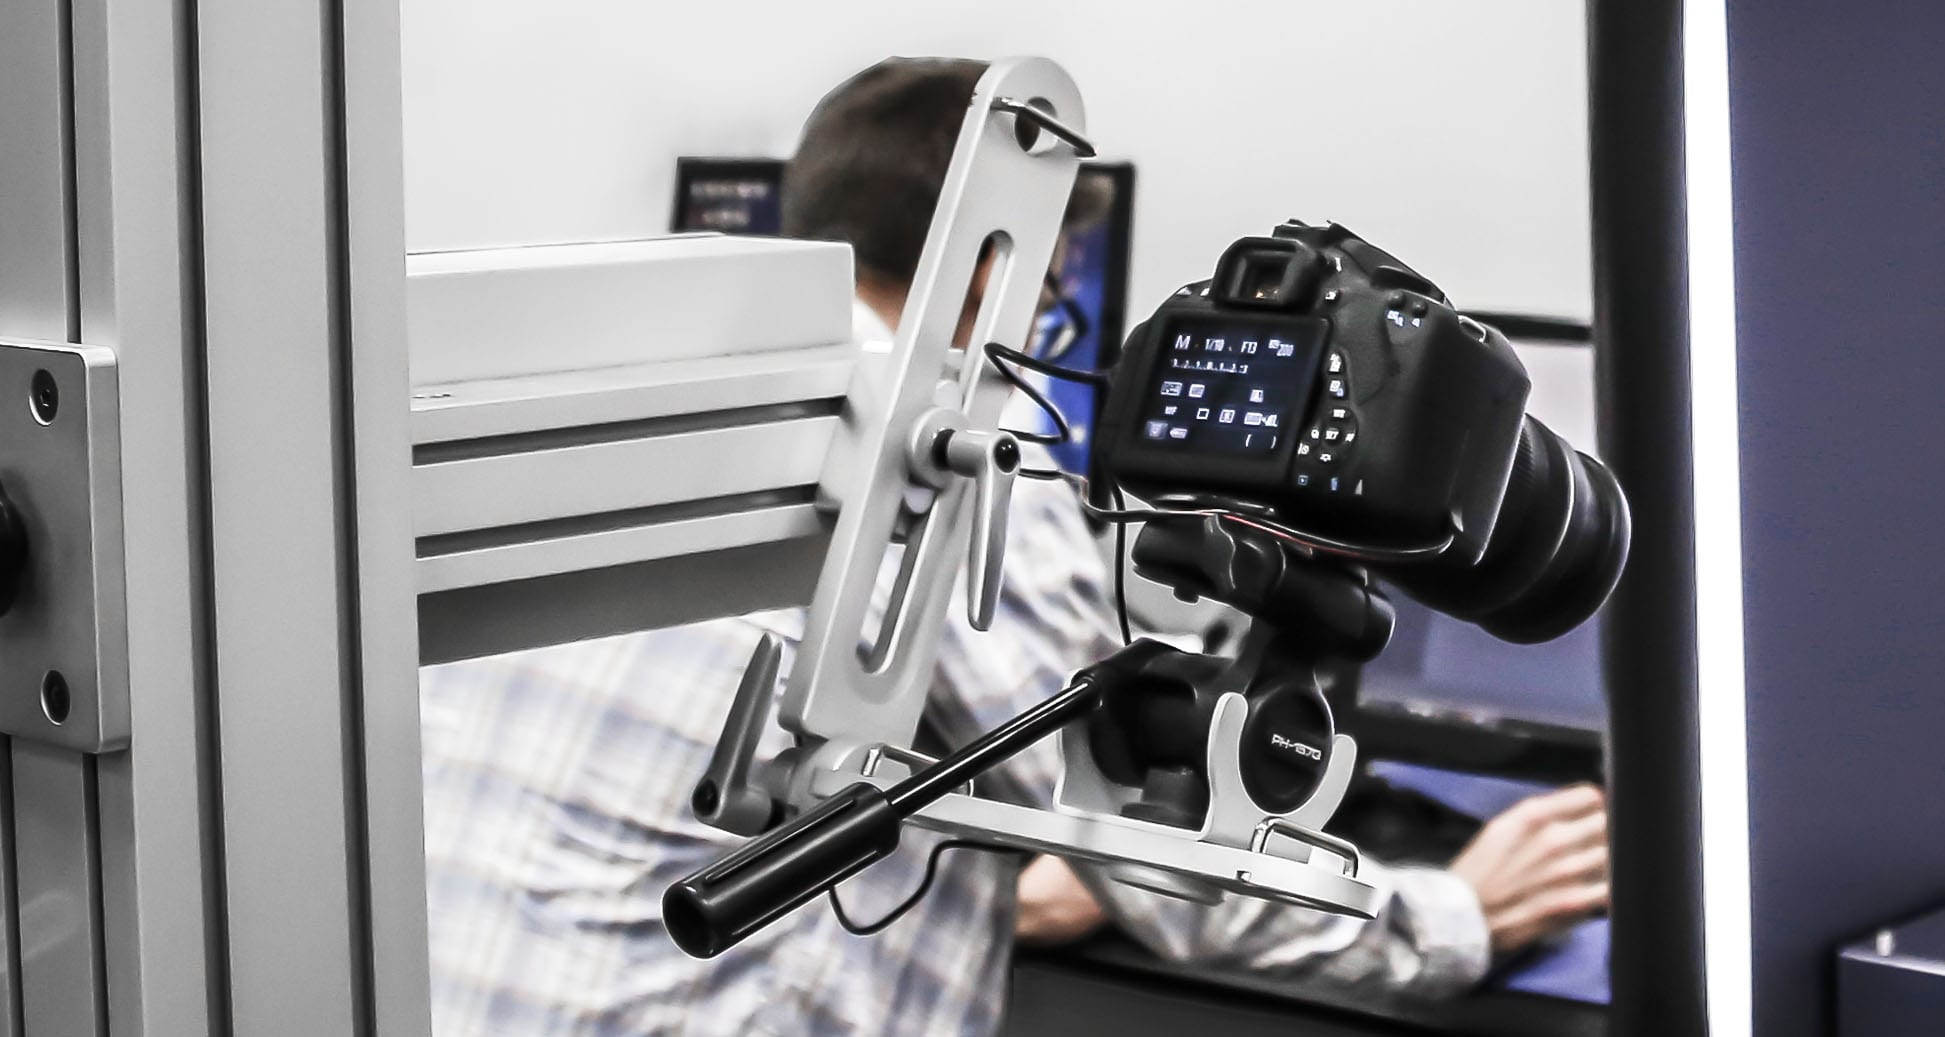 3D photography equipment from Ortery Technologies offers superior flexibility